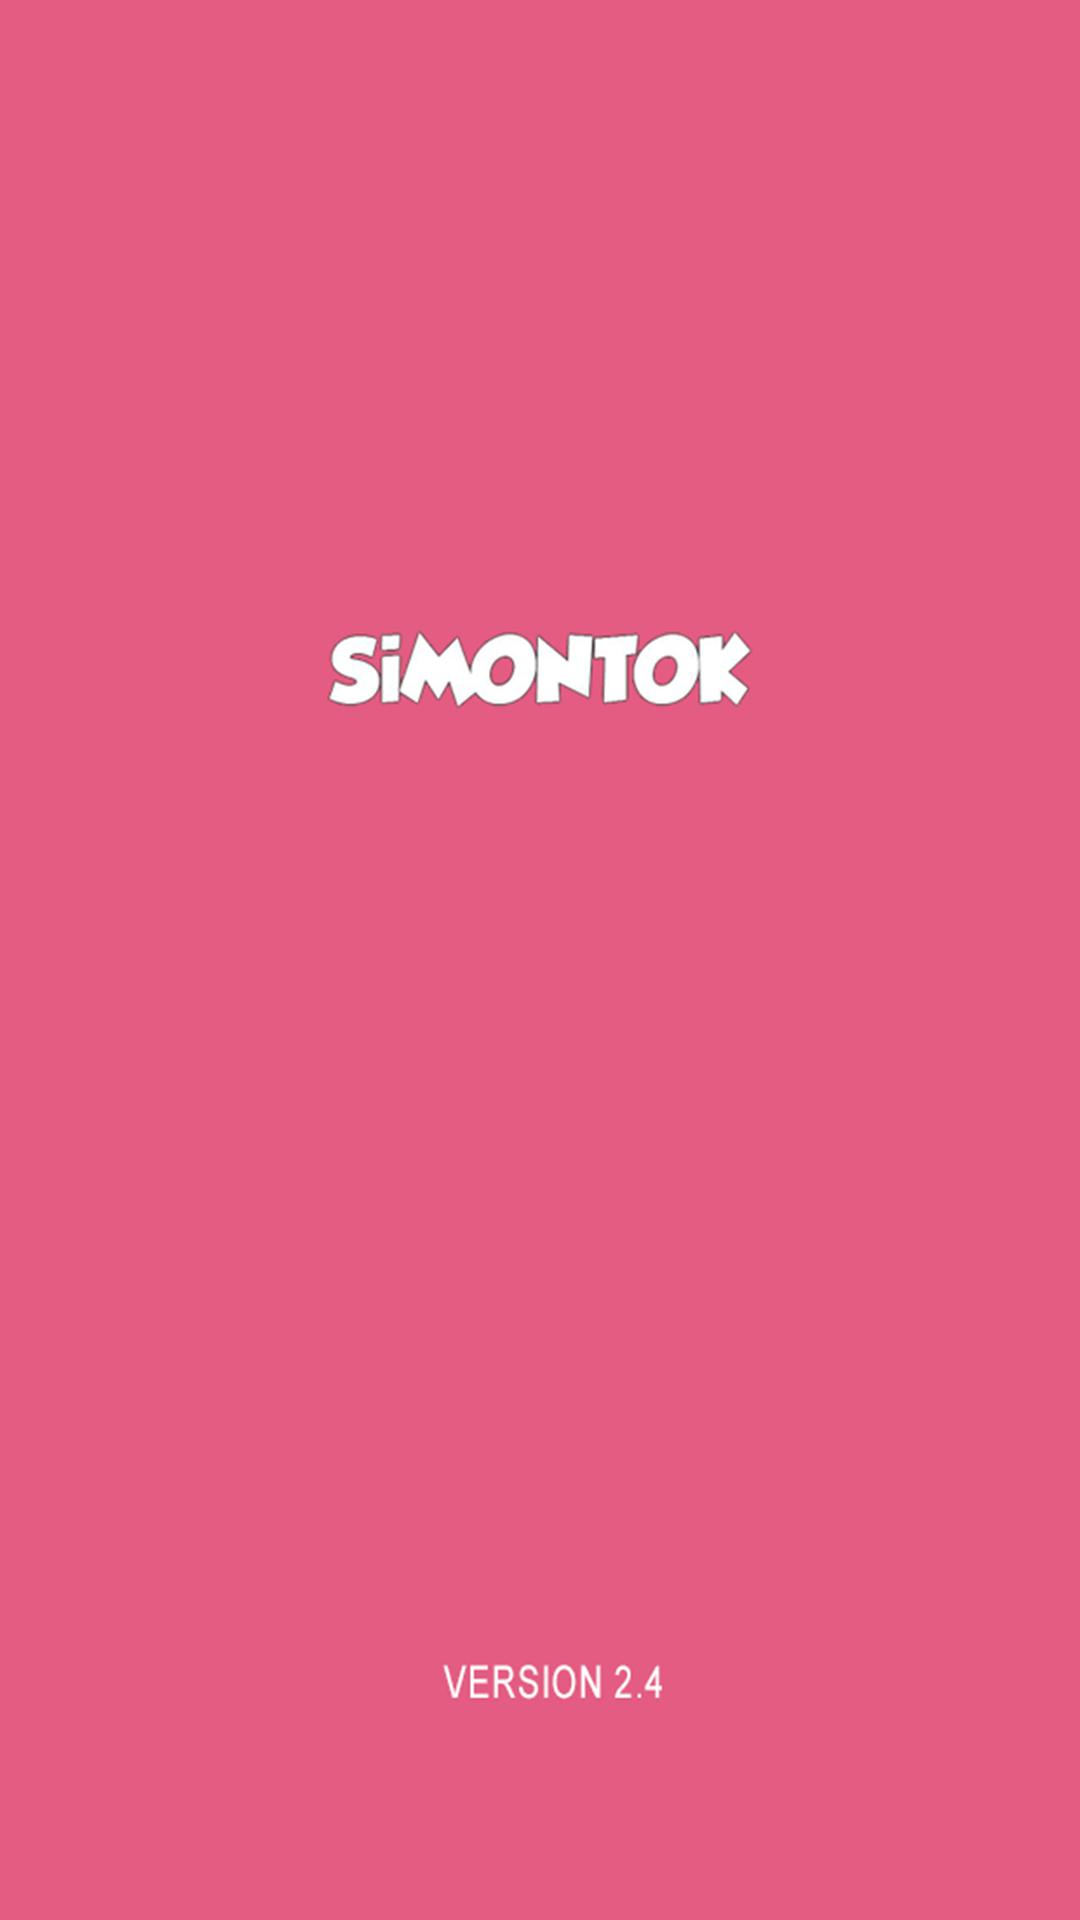 simontok untuk for Android - APK Download